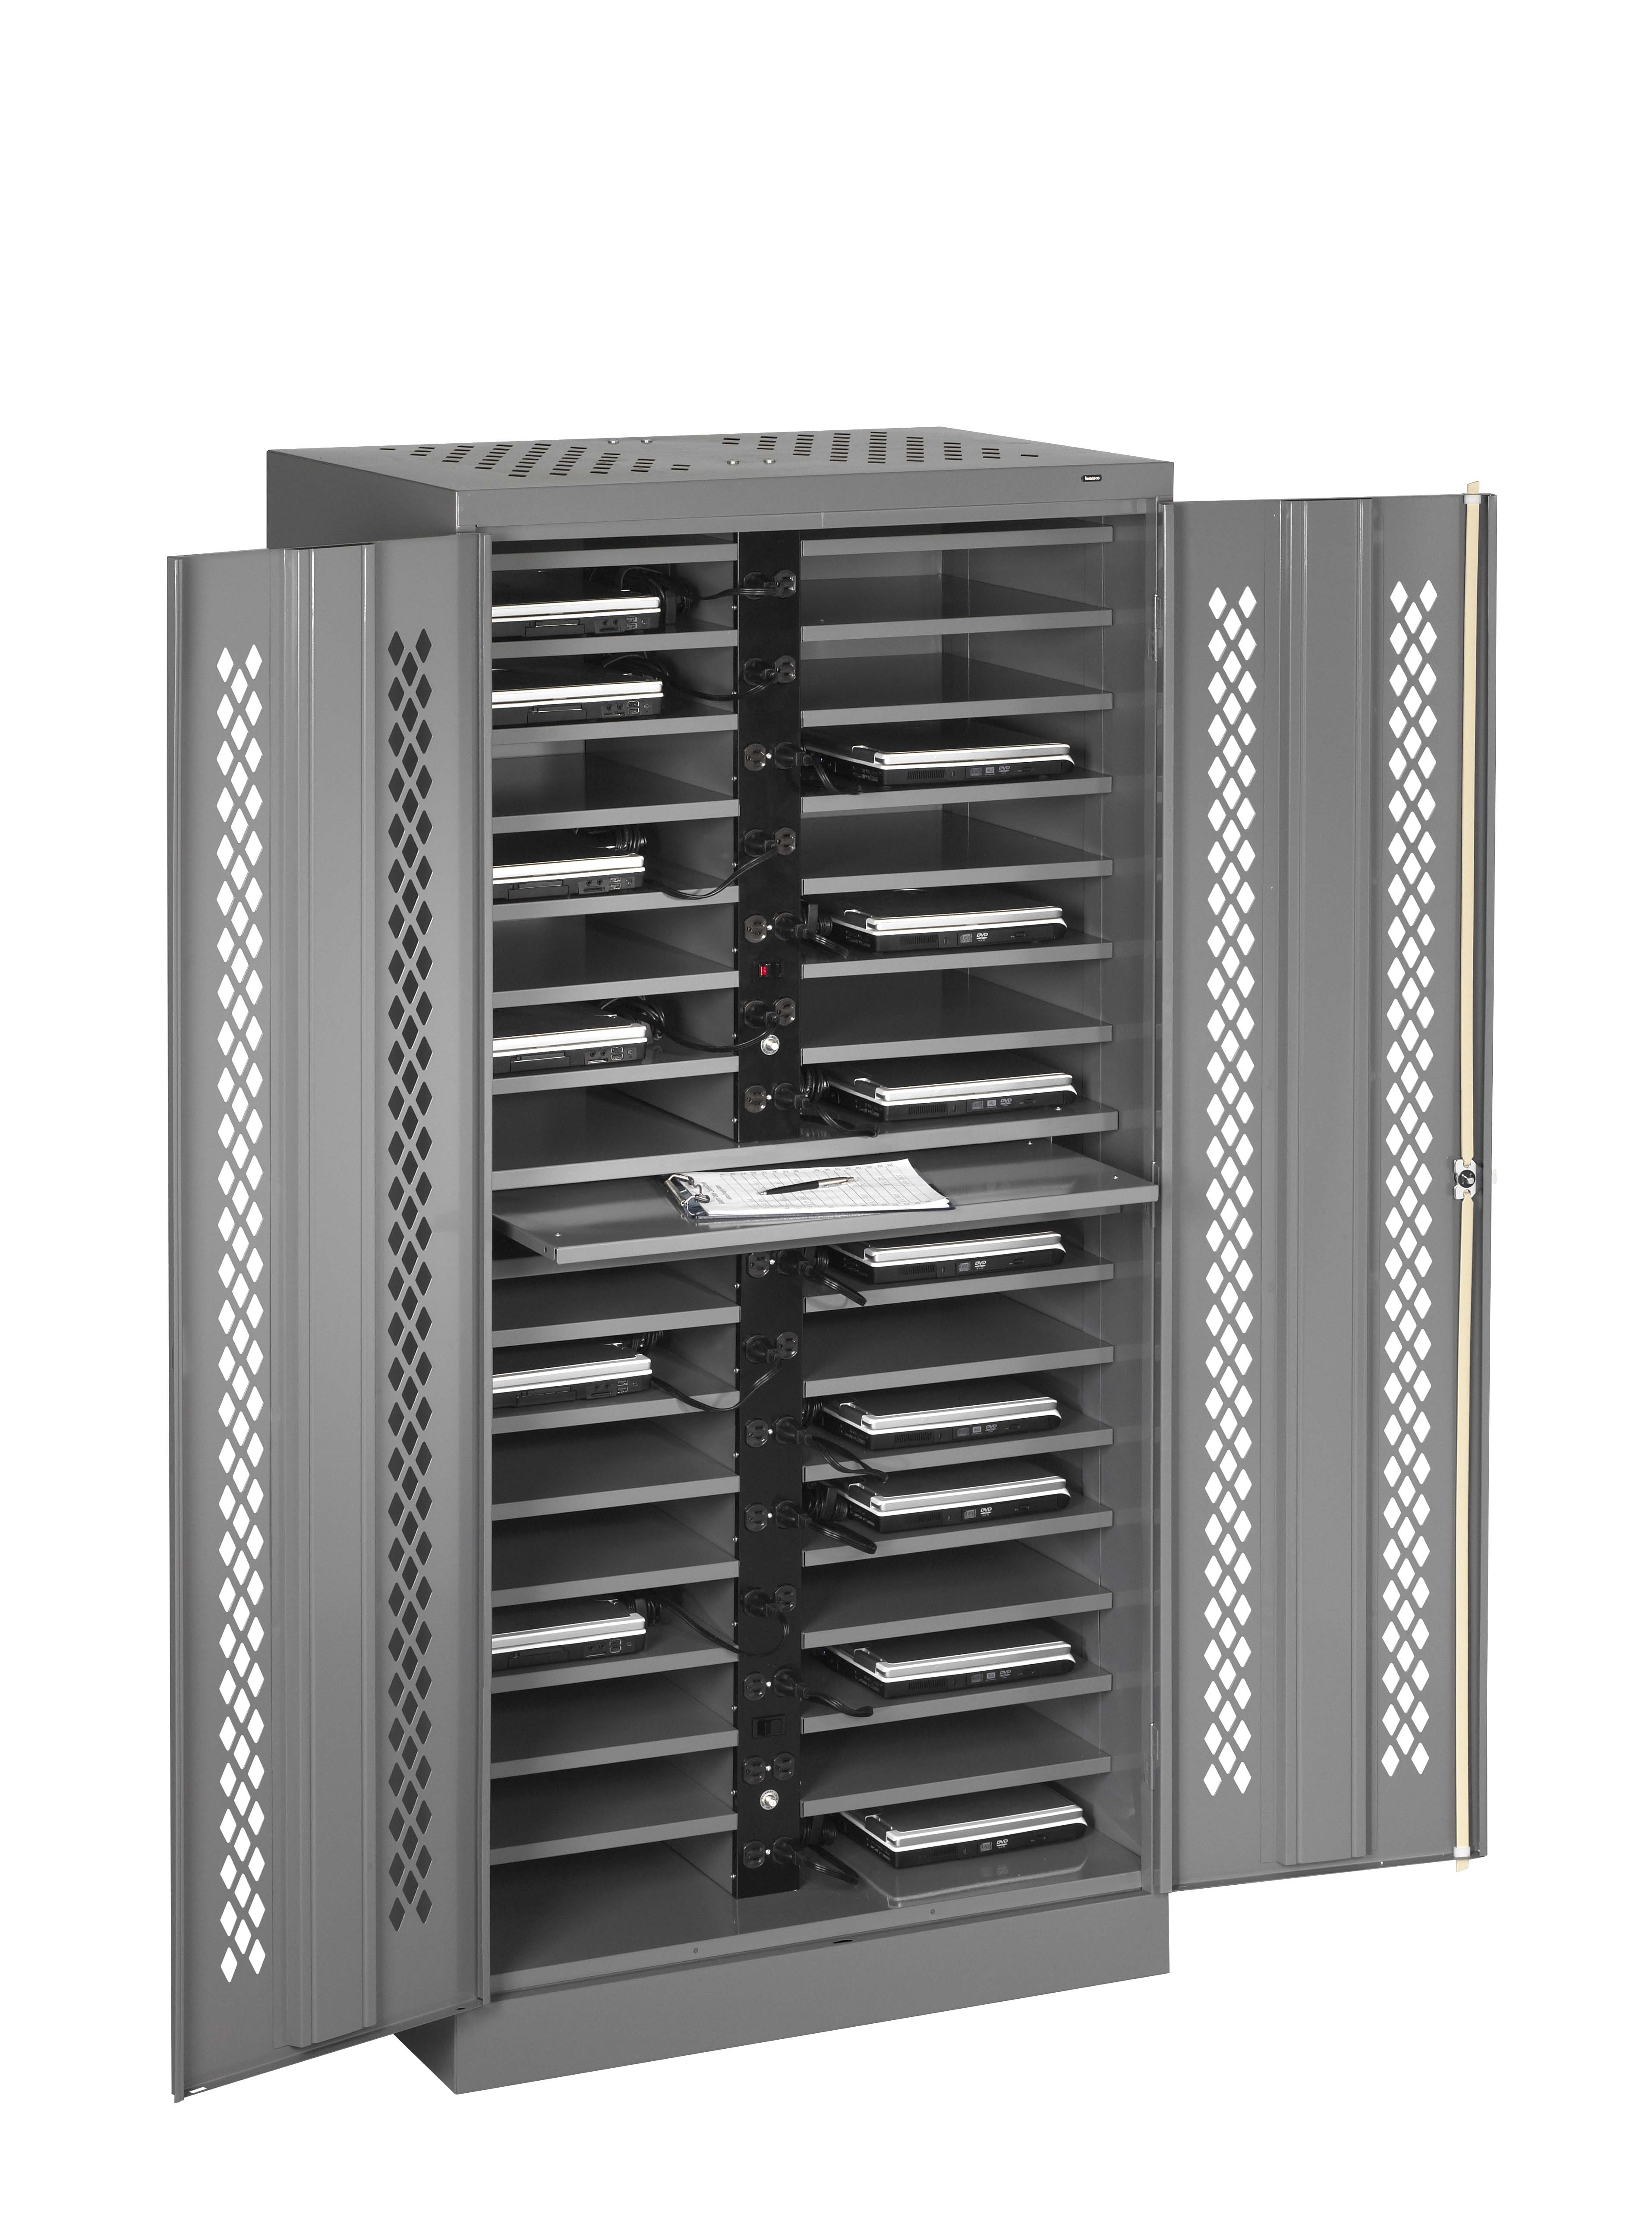 Secure Laptop Storage CabinetsSecure Laptop Storage Cabinets